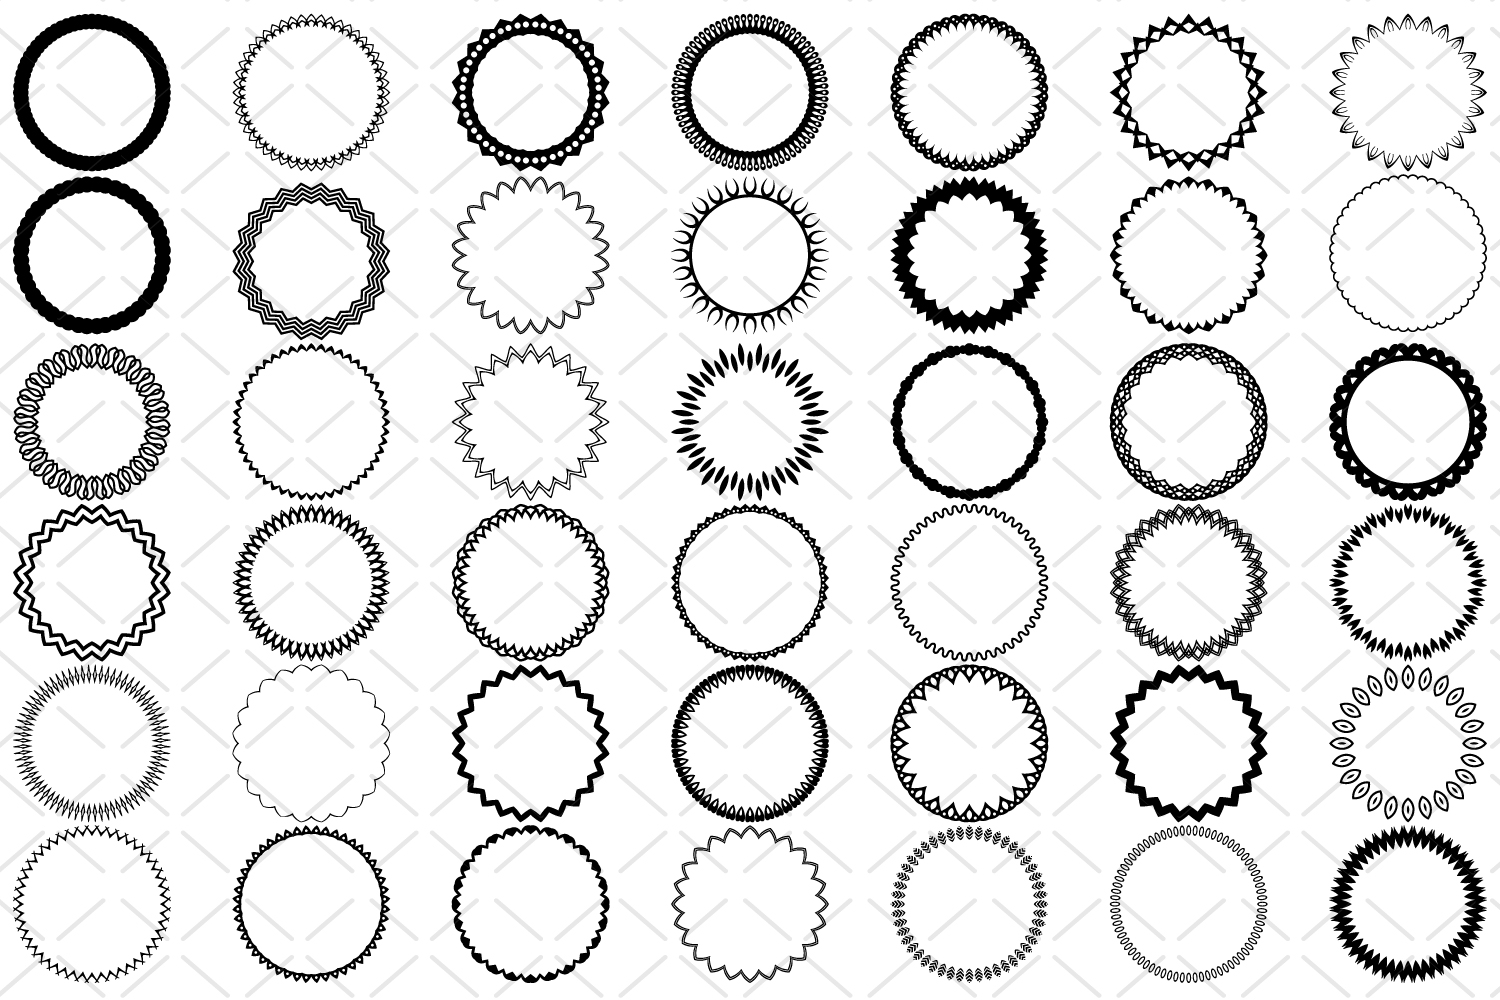 42 Round frames, circle border SVG example image 2